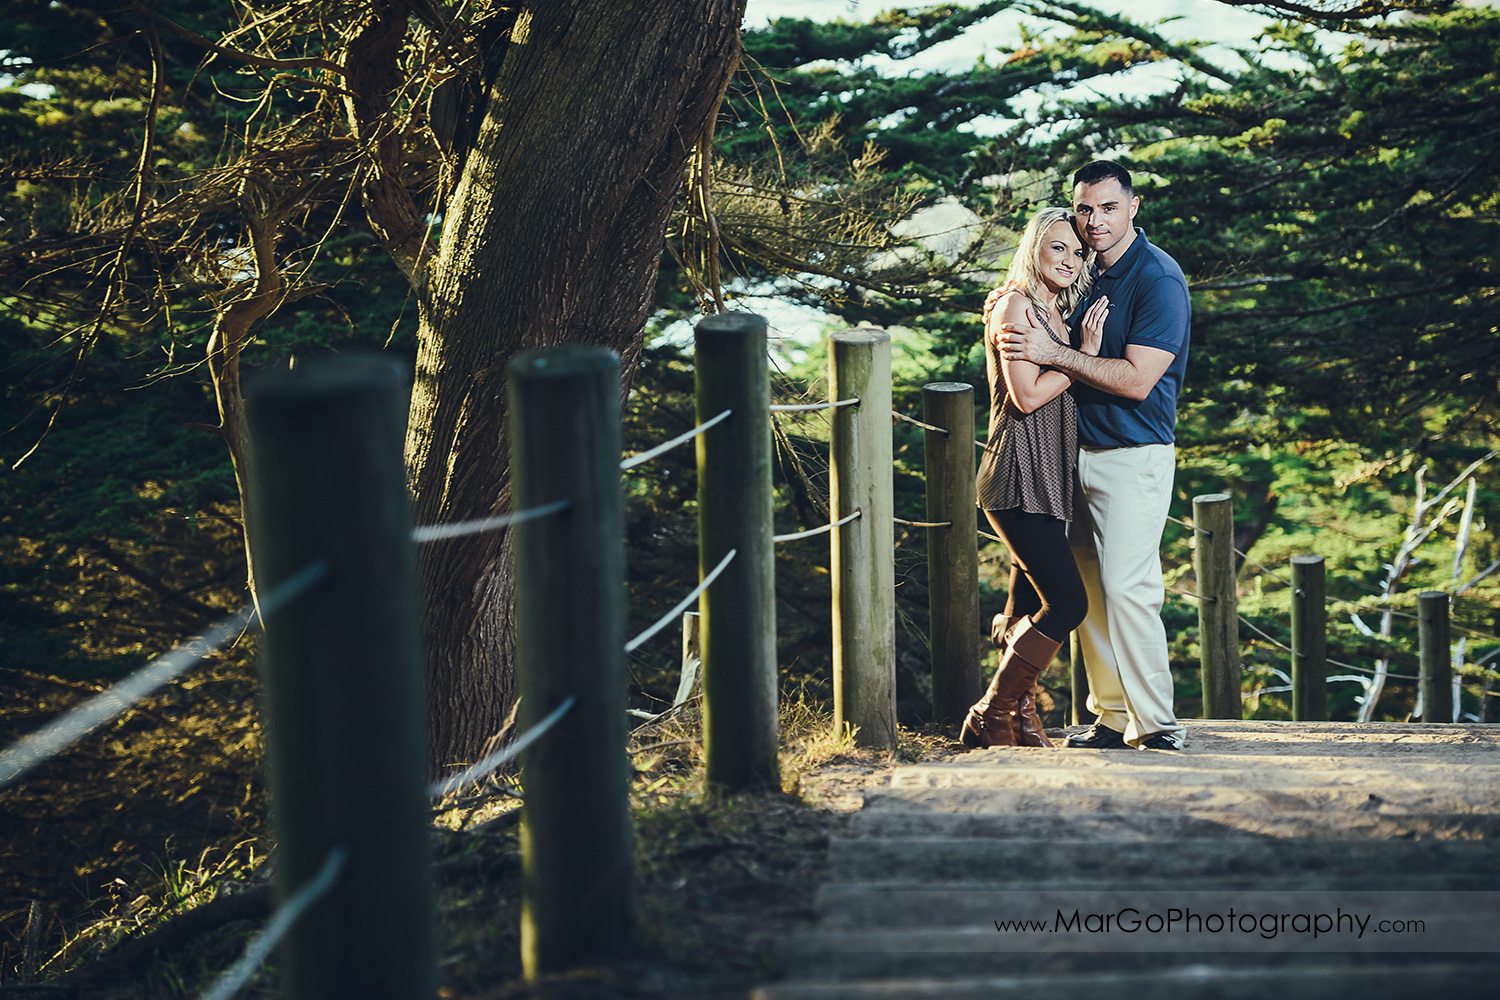 man in navy blue shirt and woman in brown tunic on the wooden stairs looking into camera during engagement session at San Francisco Lands End